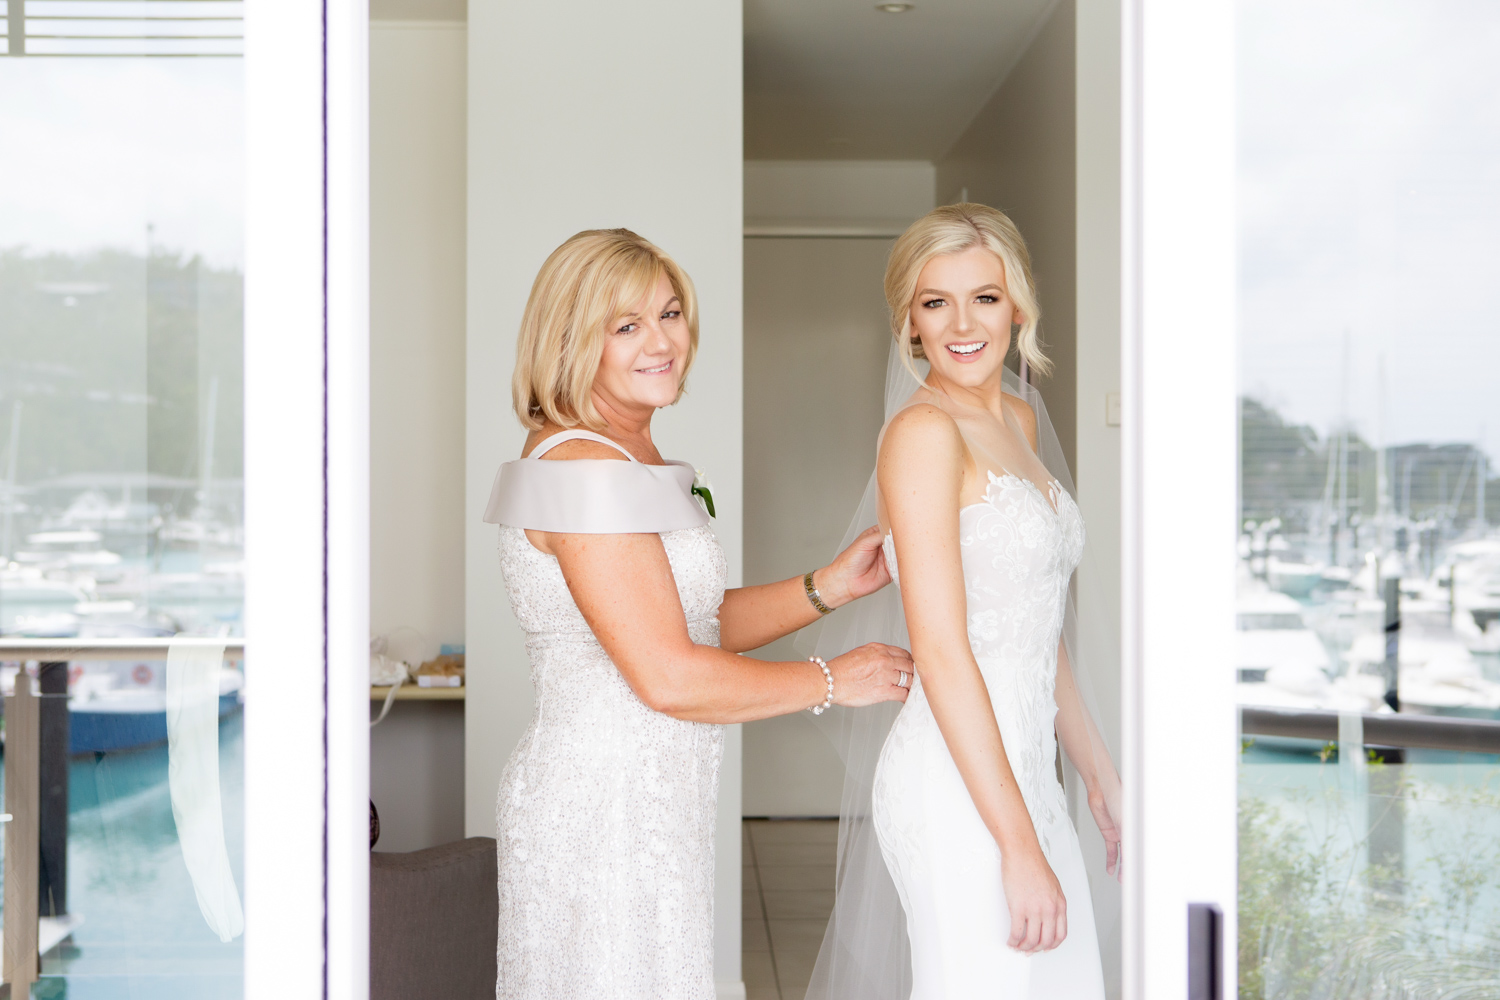 wedding-0113-dress-gown-buttons-back-mum-queensland.jpg